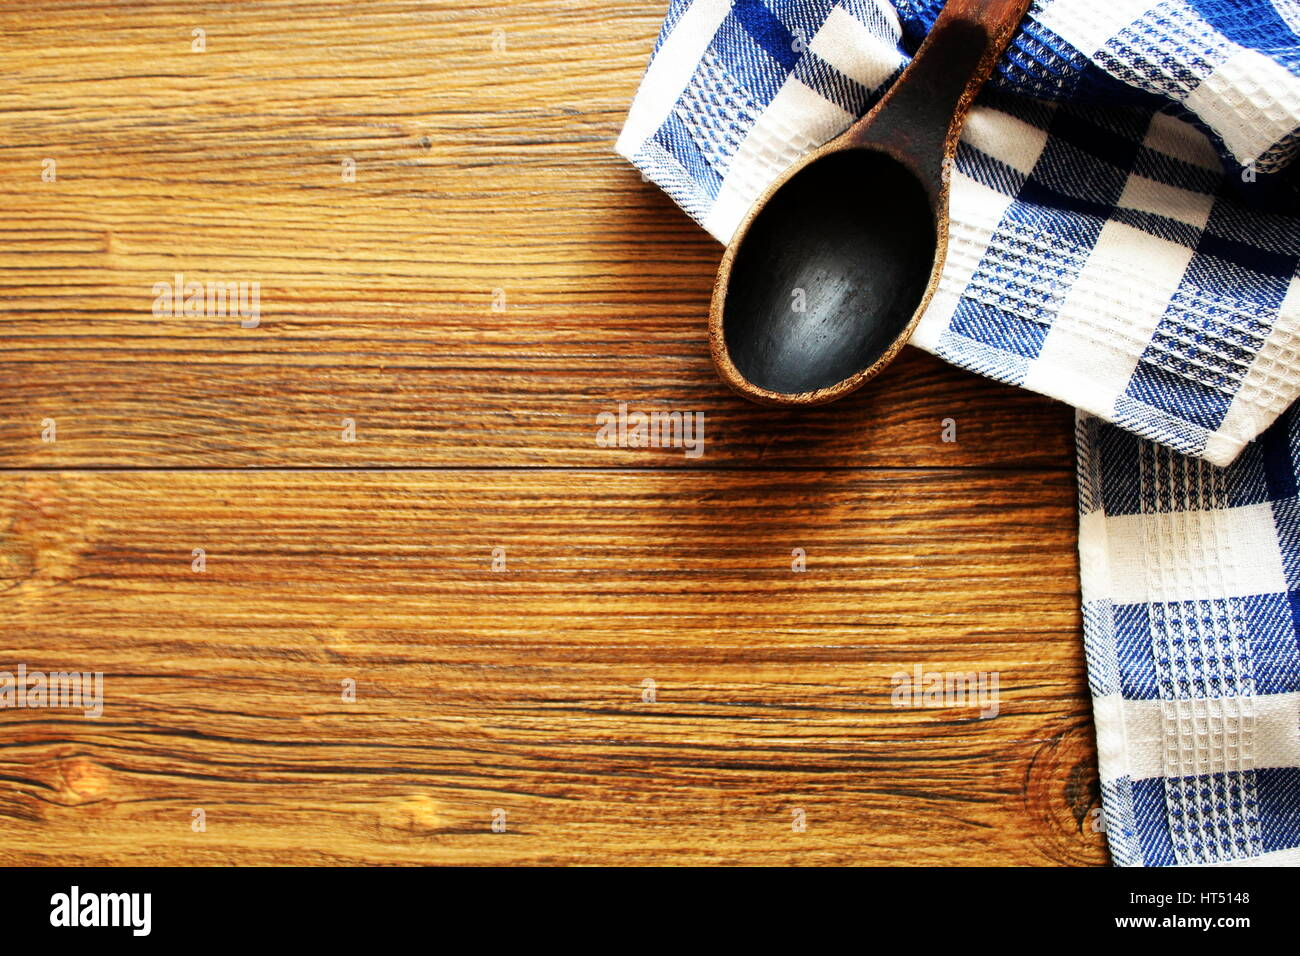 Wooden Spoon On Wood Texture Of Dining Table Top View Kitchen And Food Concept